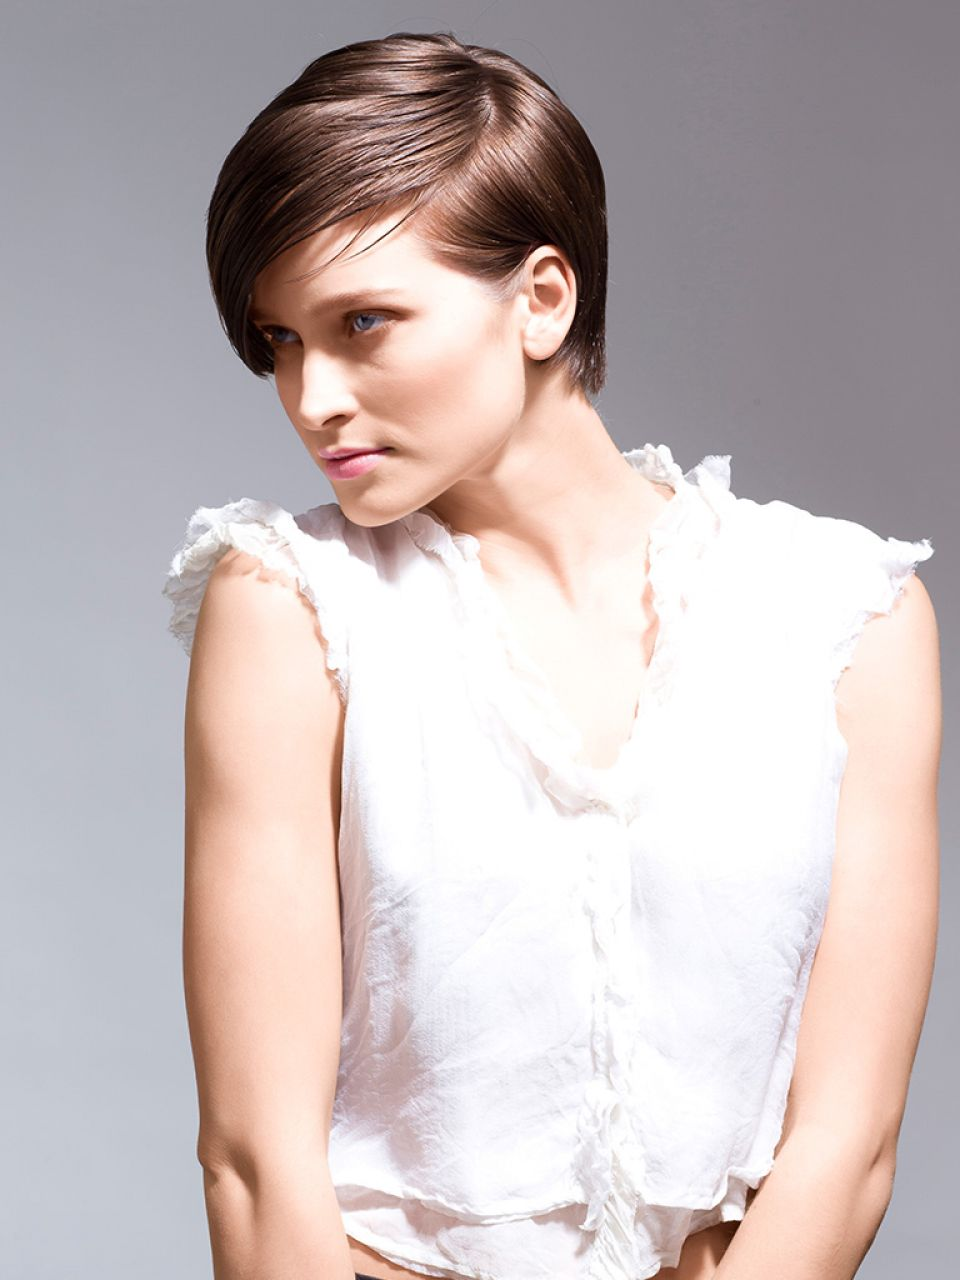 Unsere Top 20 Pixie Cut Frisuren Platz 5